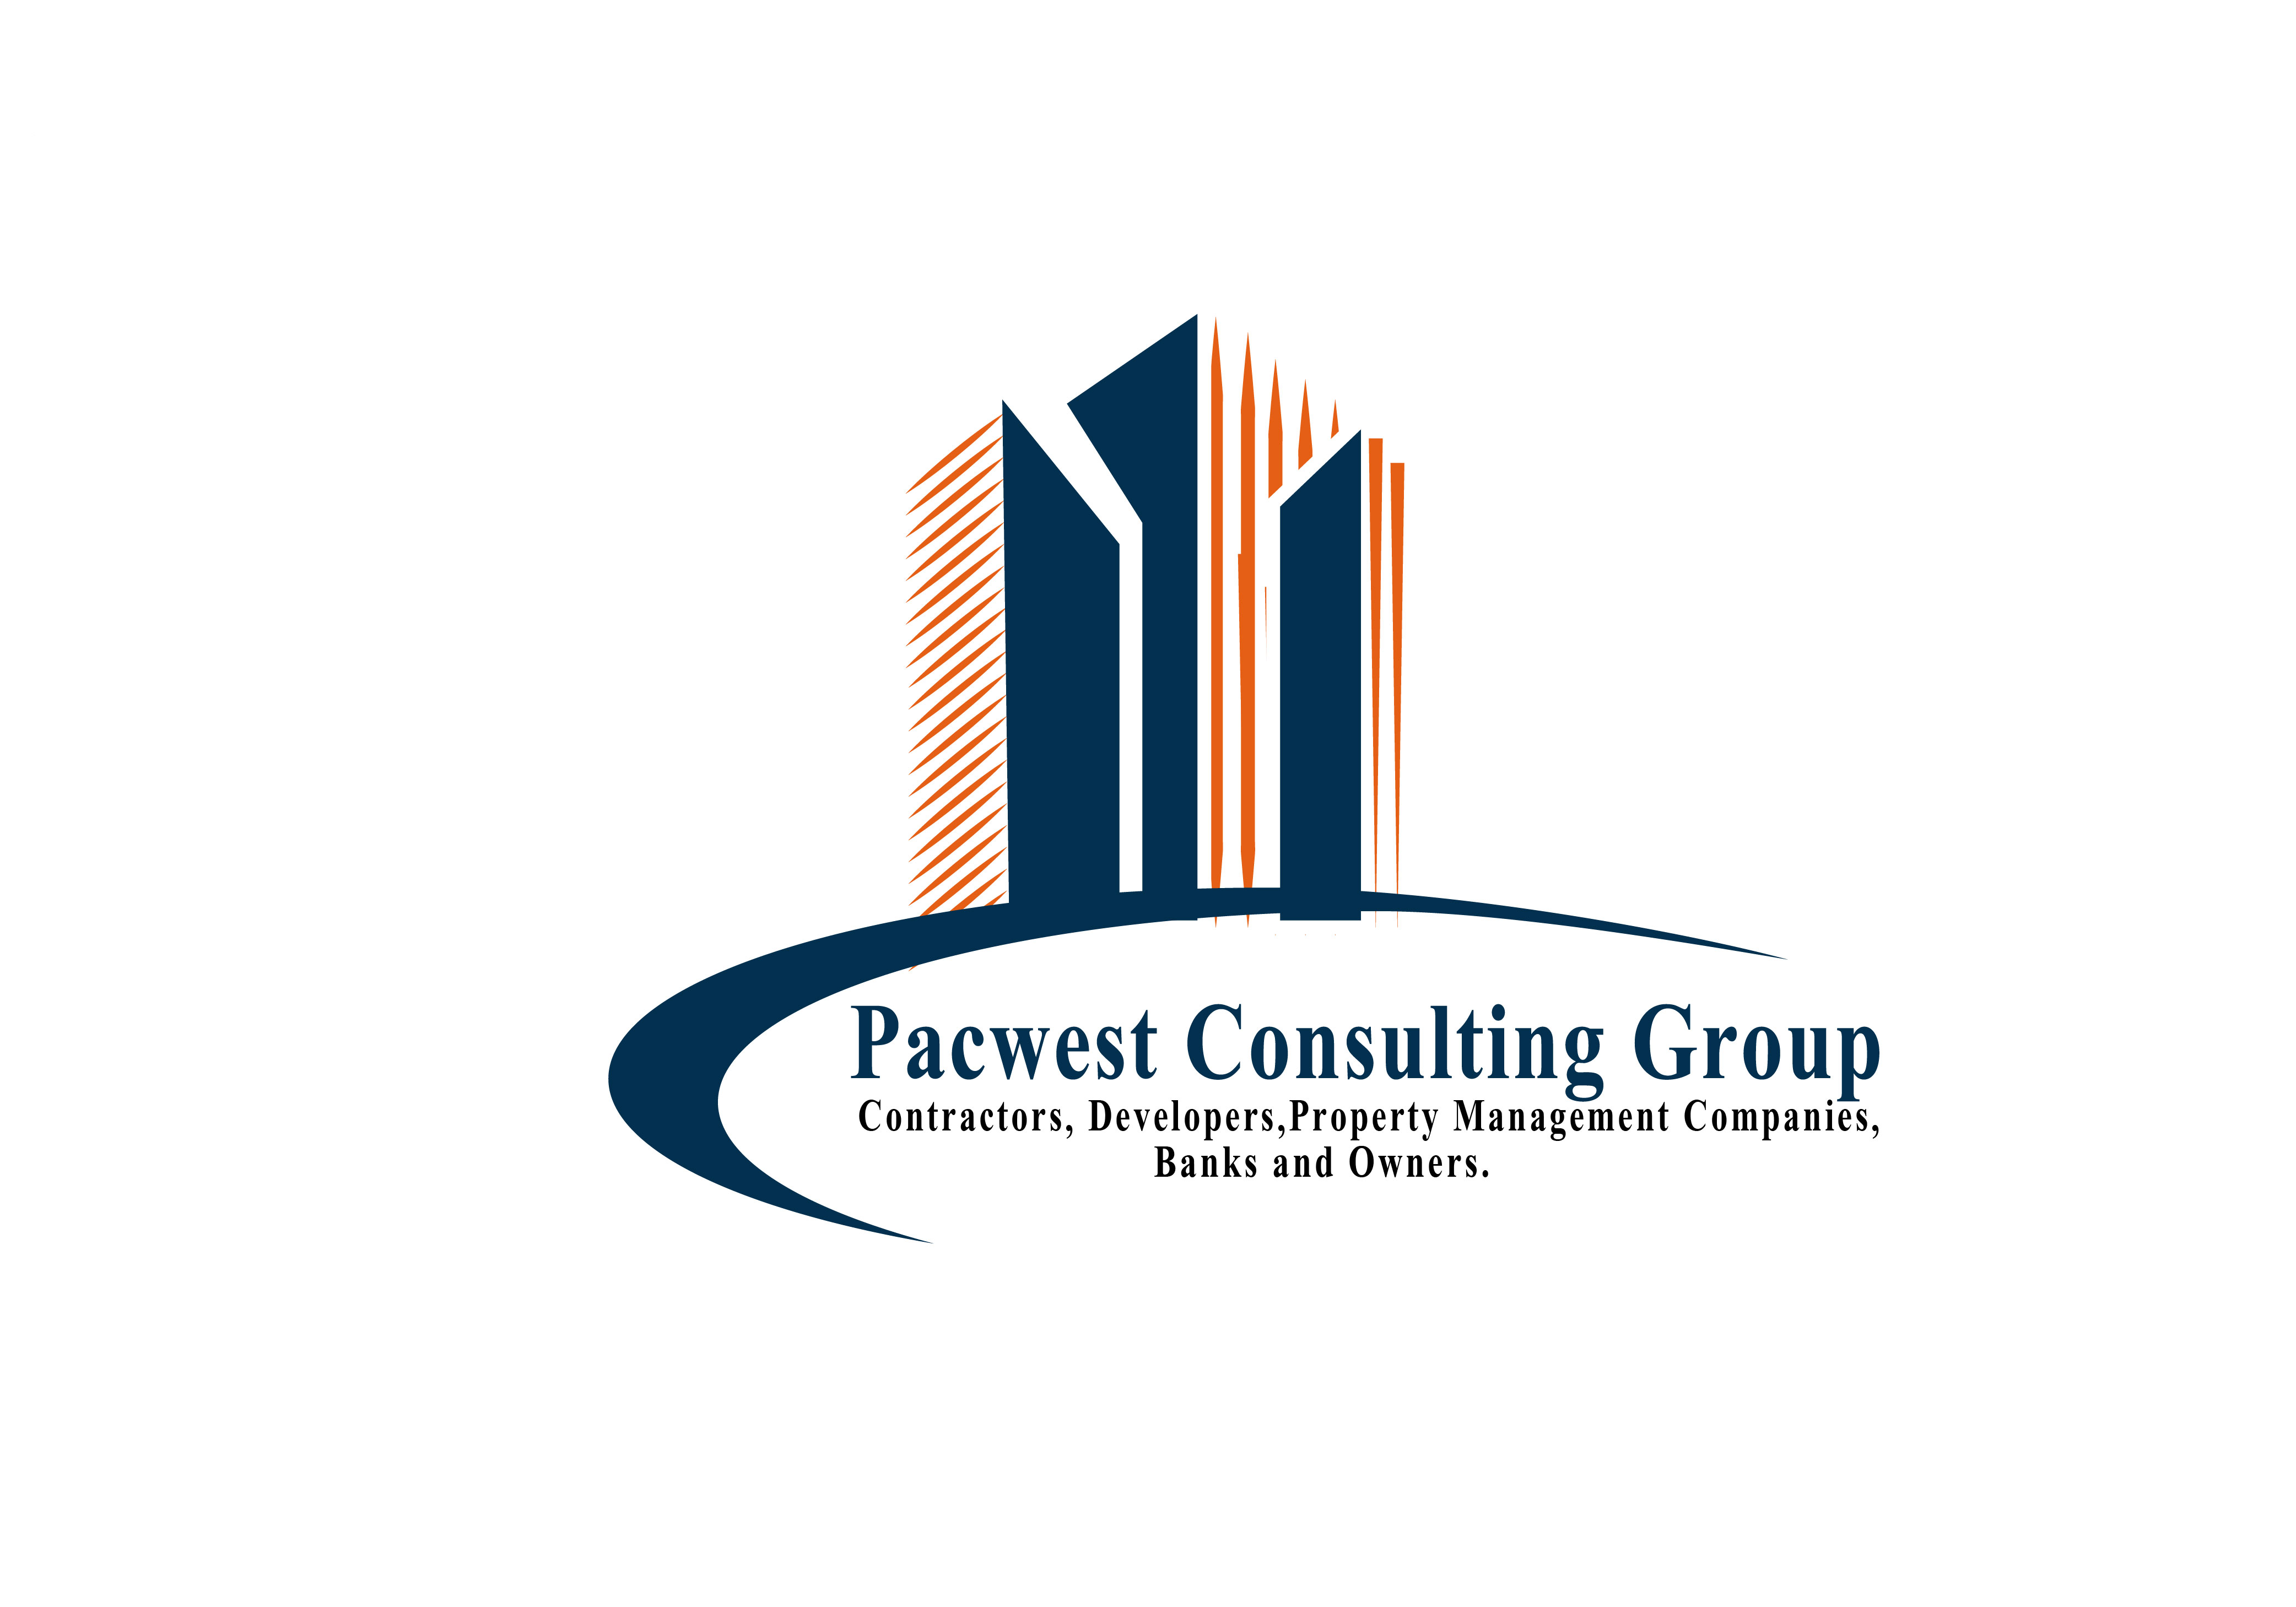 Logo Design by Bilal Baloch - Entry No. 20 in the Logo Design Contest Imaginative Logo Design for Pacwest Consulting Group.